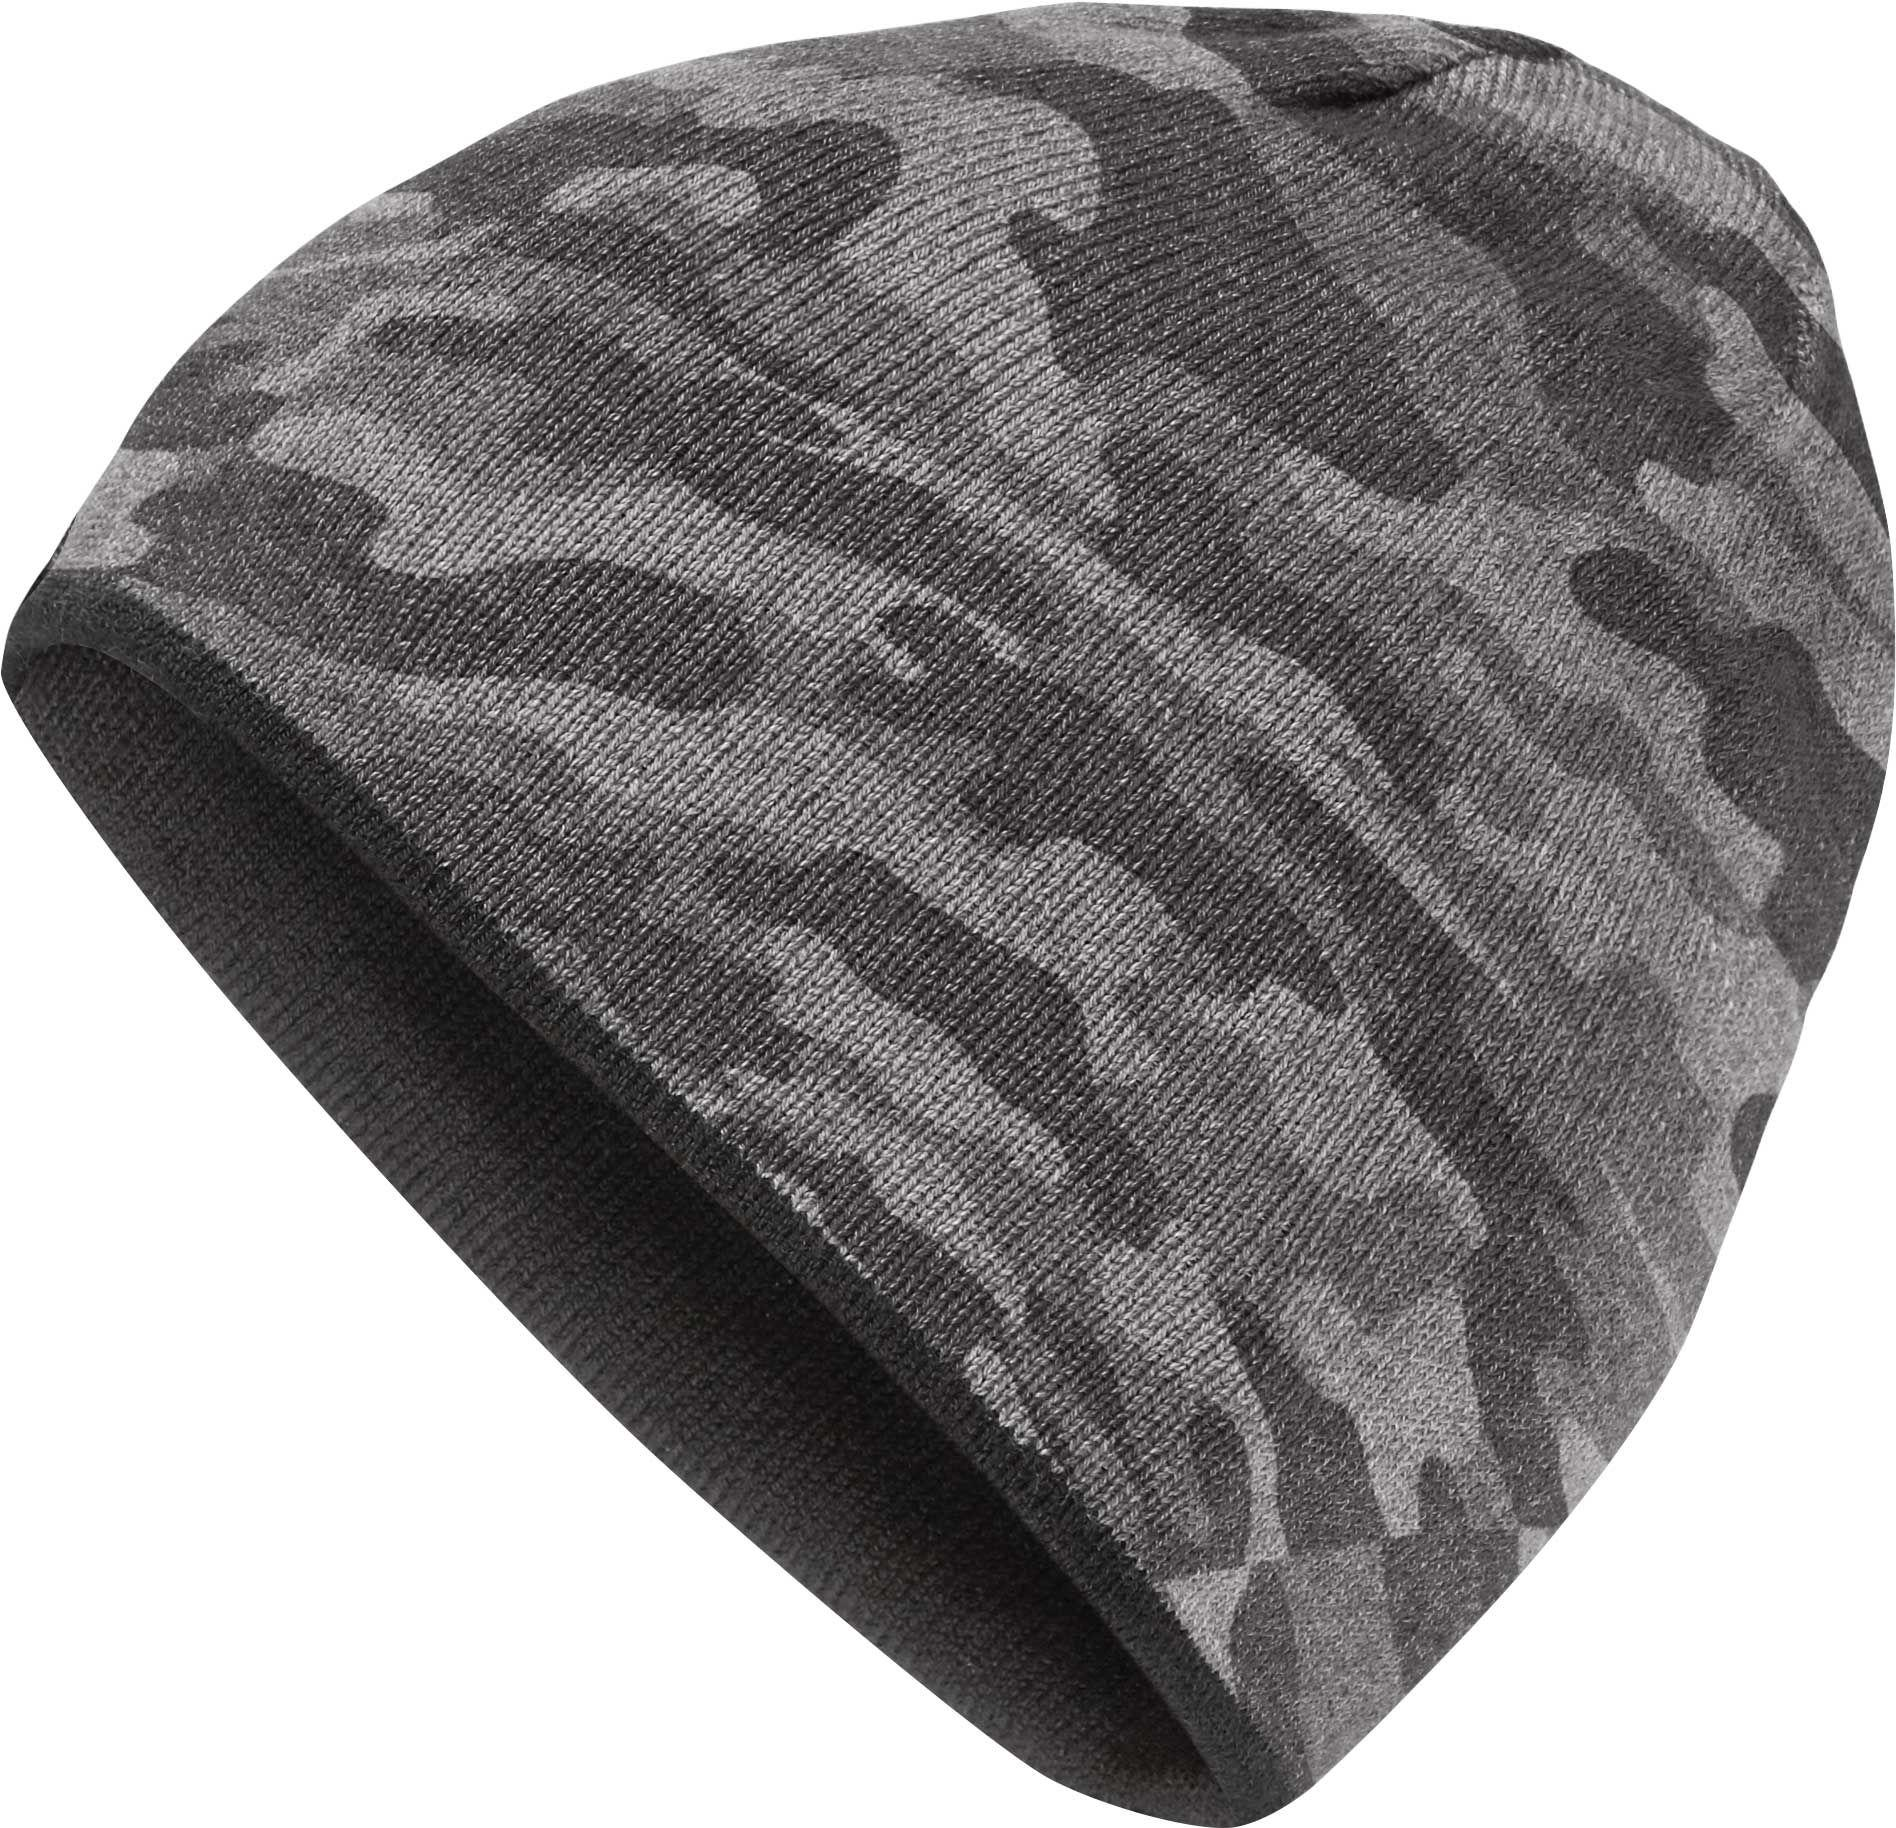 7342ada3bf5 Lyst - The North Face Reversible Highline Beanie in Gray for Men